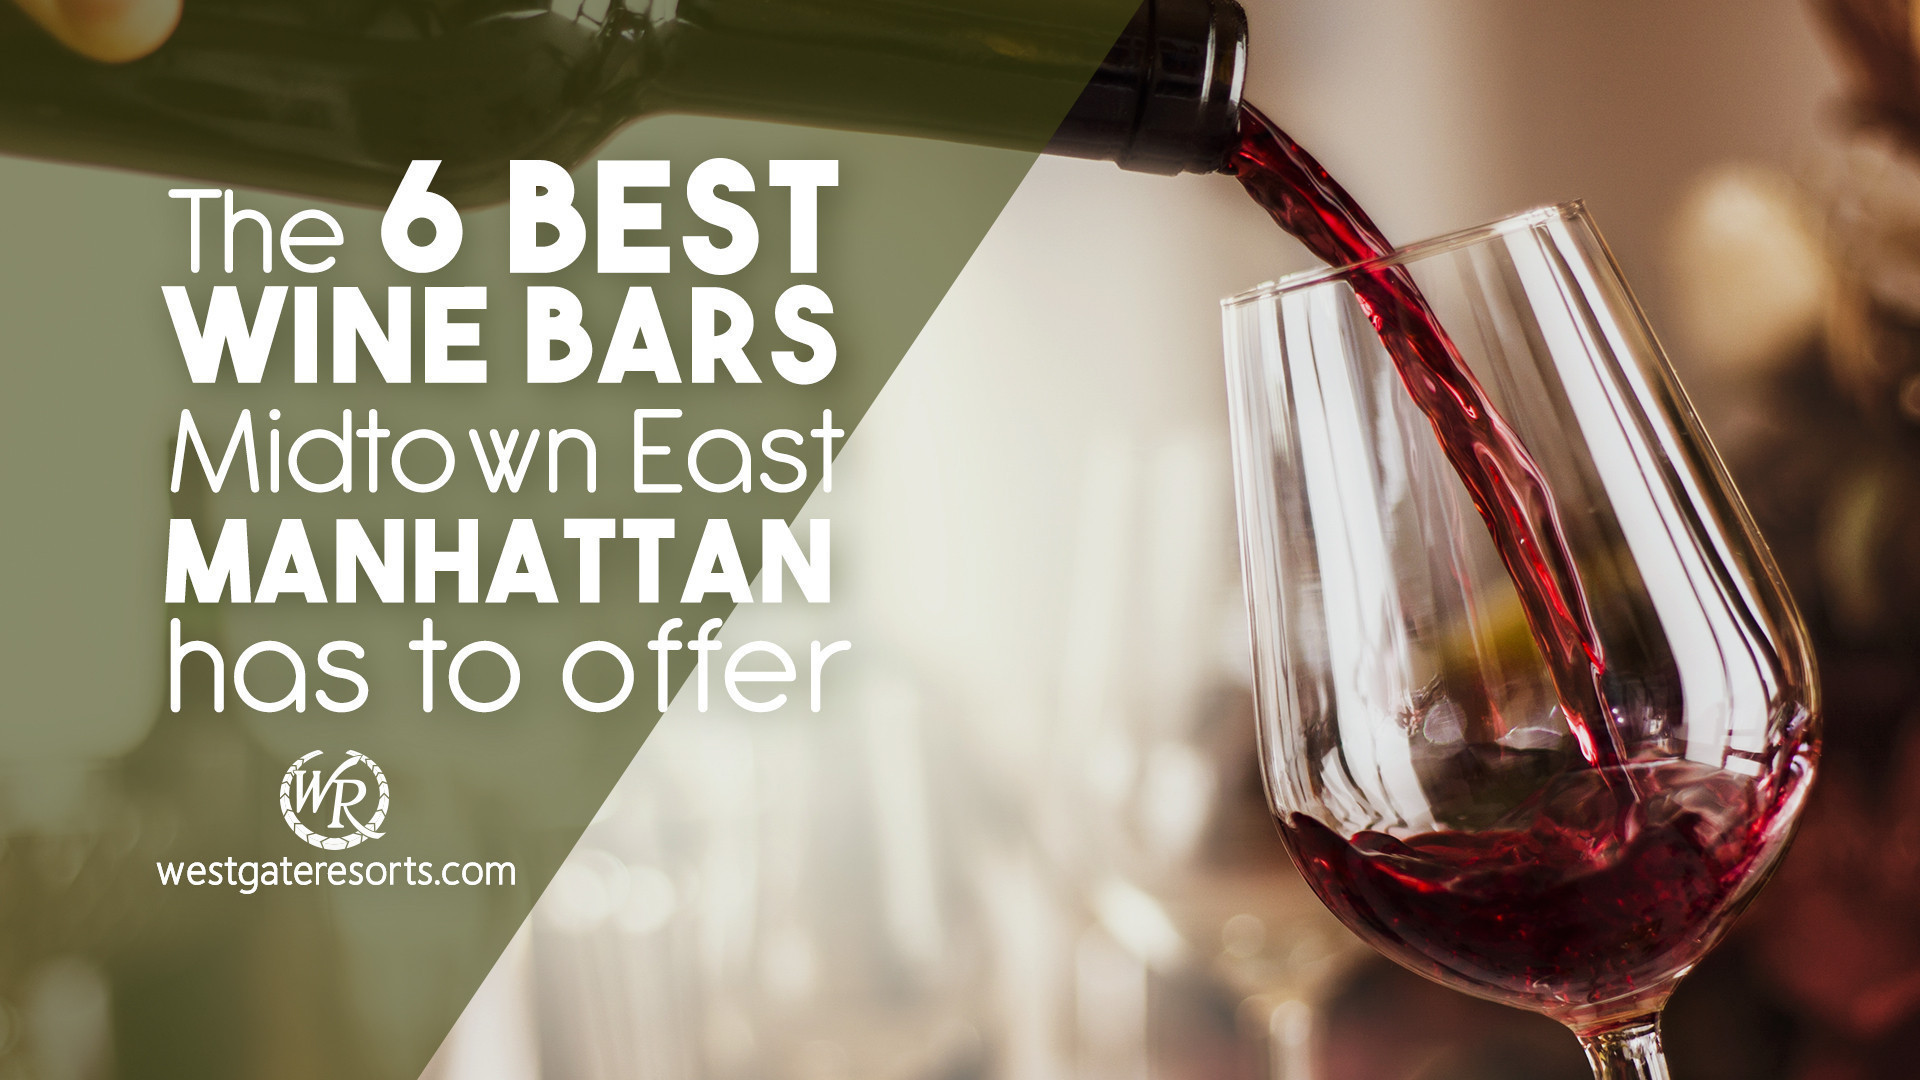 The 6 Best Wine Bars Midtown East Manhattan Has To Offer | Westgate New York City